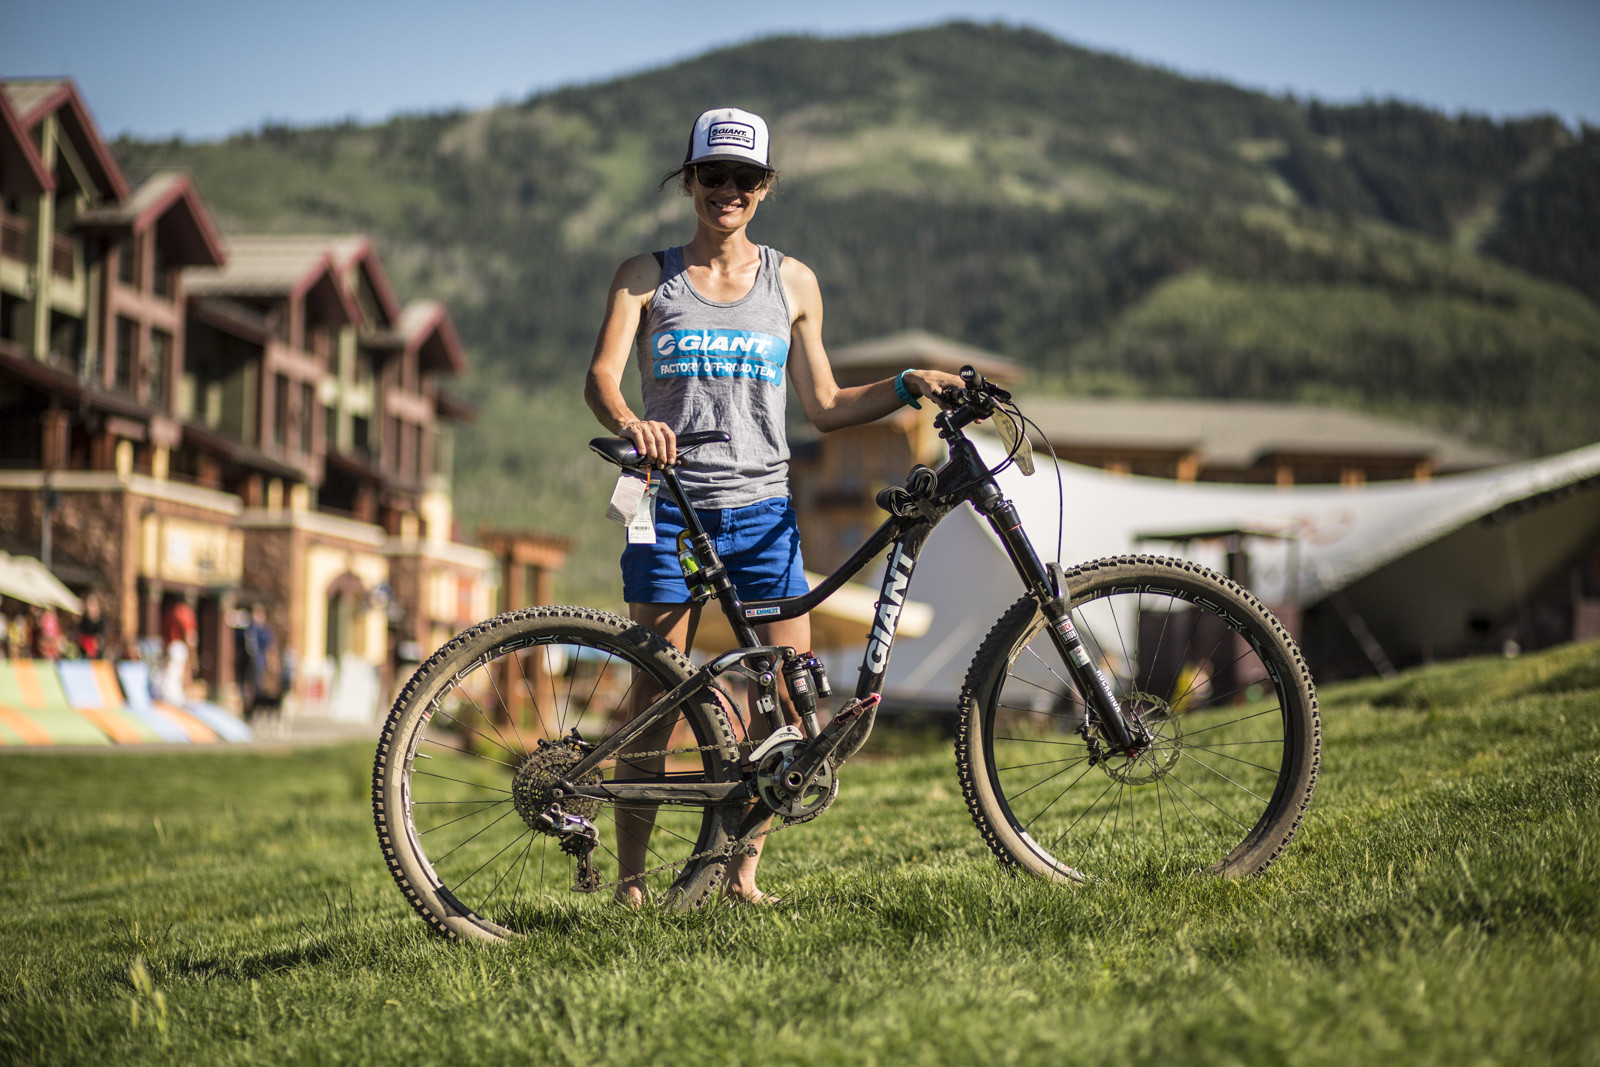 Kelli Emmett with her Prototype Giant Enduro Bike - Race Report, Photos and Video: Bell Enduro Cup at Canyons Resort - Mountain Biking Pictures - Vital MTB